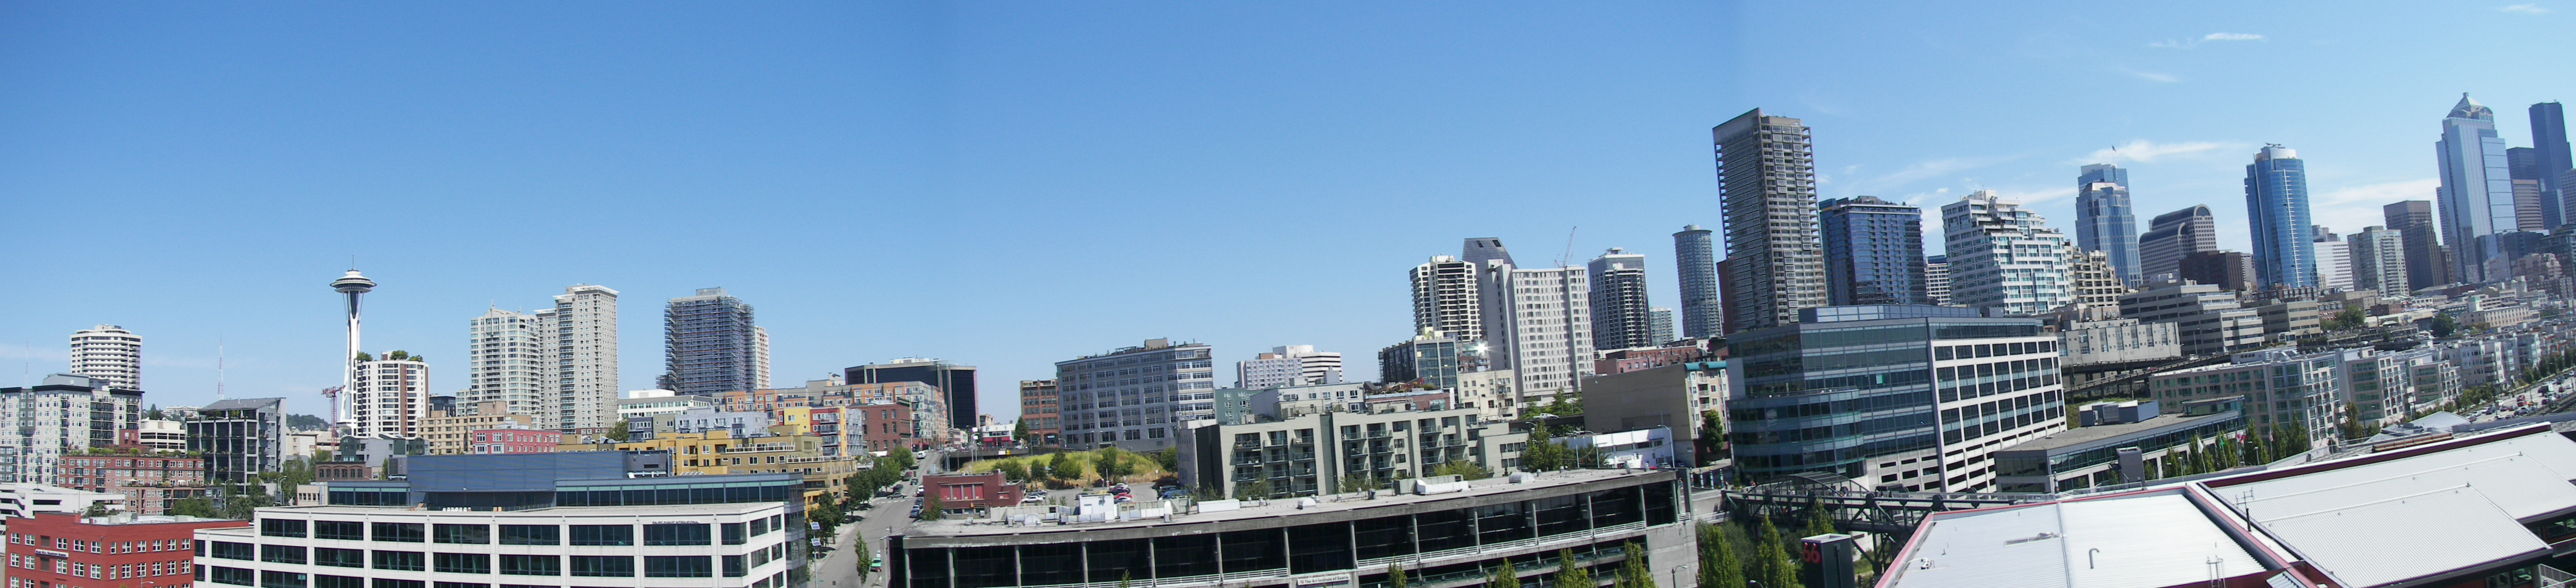 Seattle panoramic from Pier 66.jpg